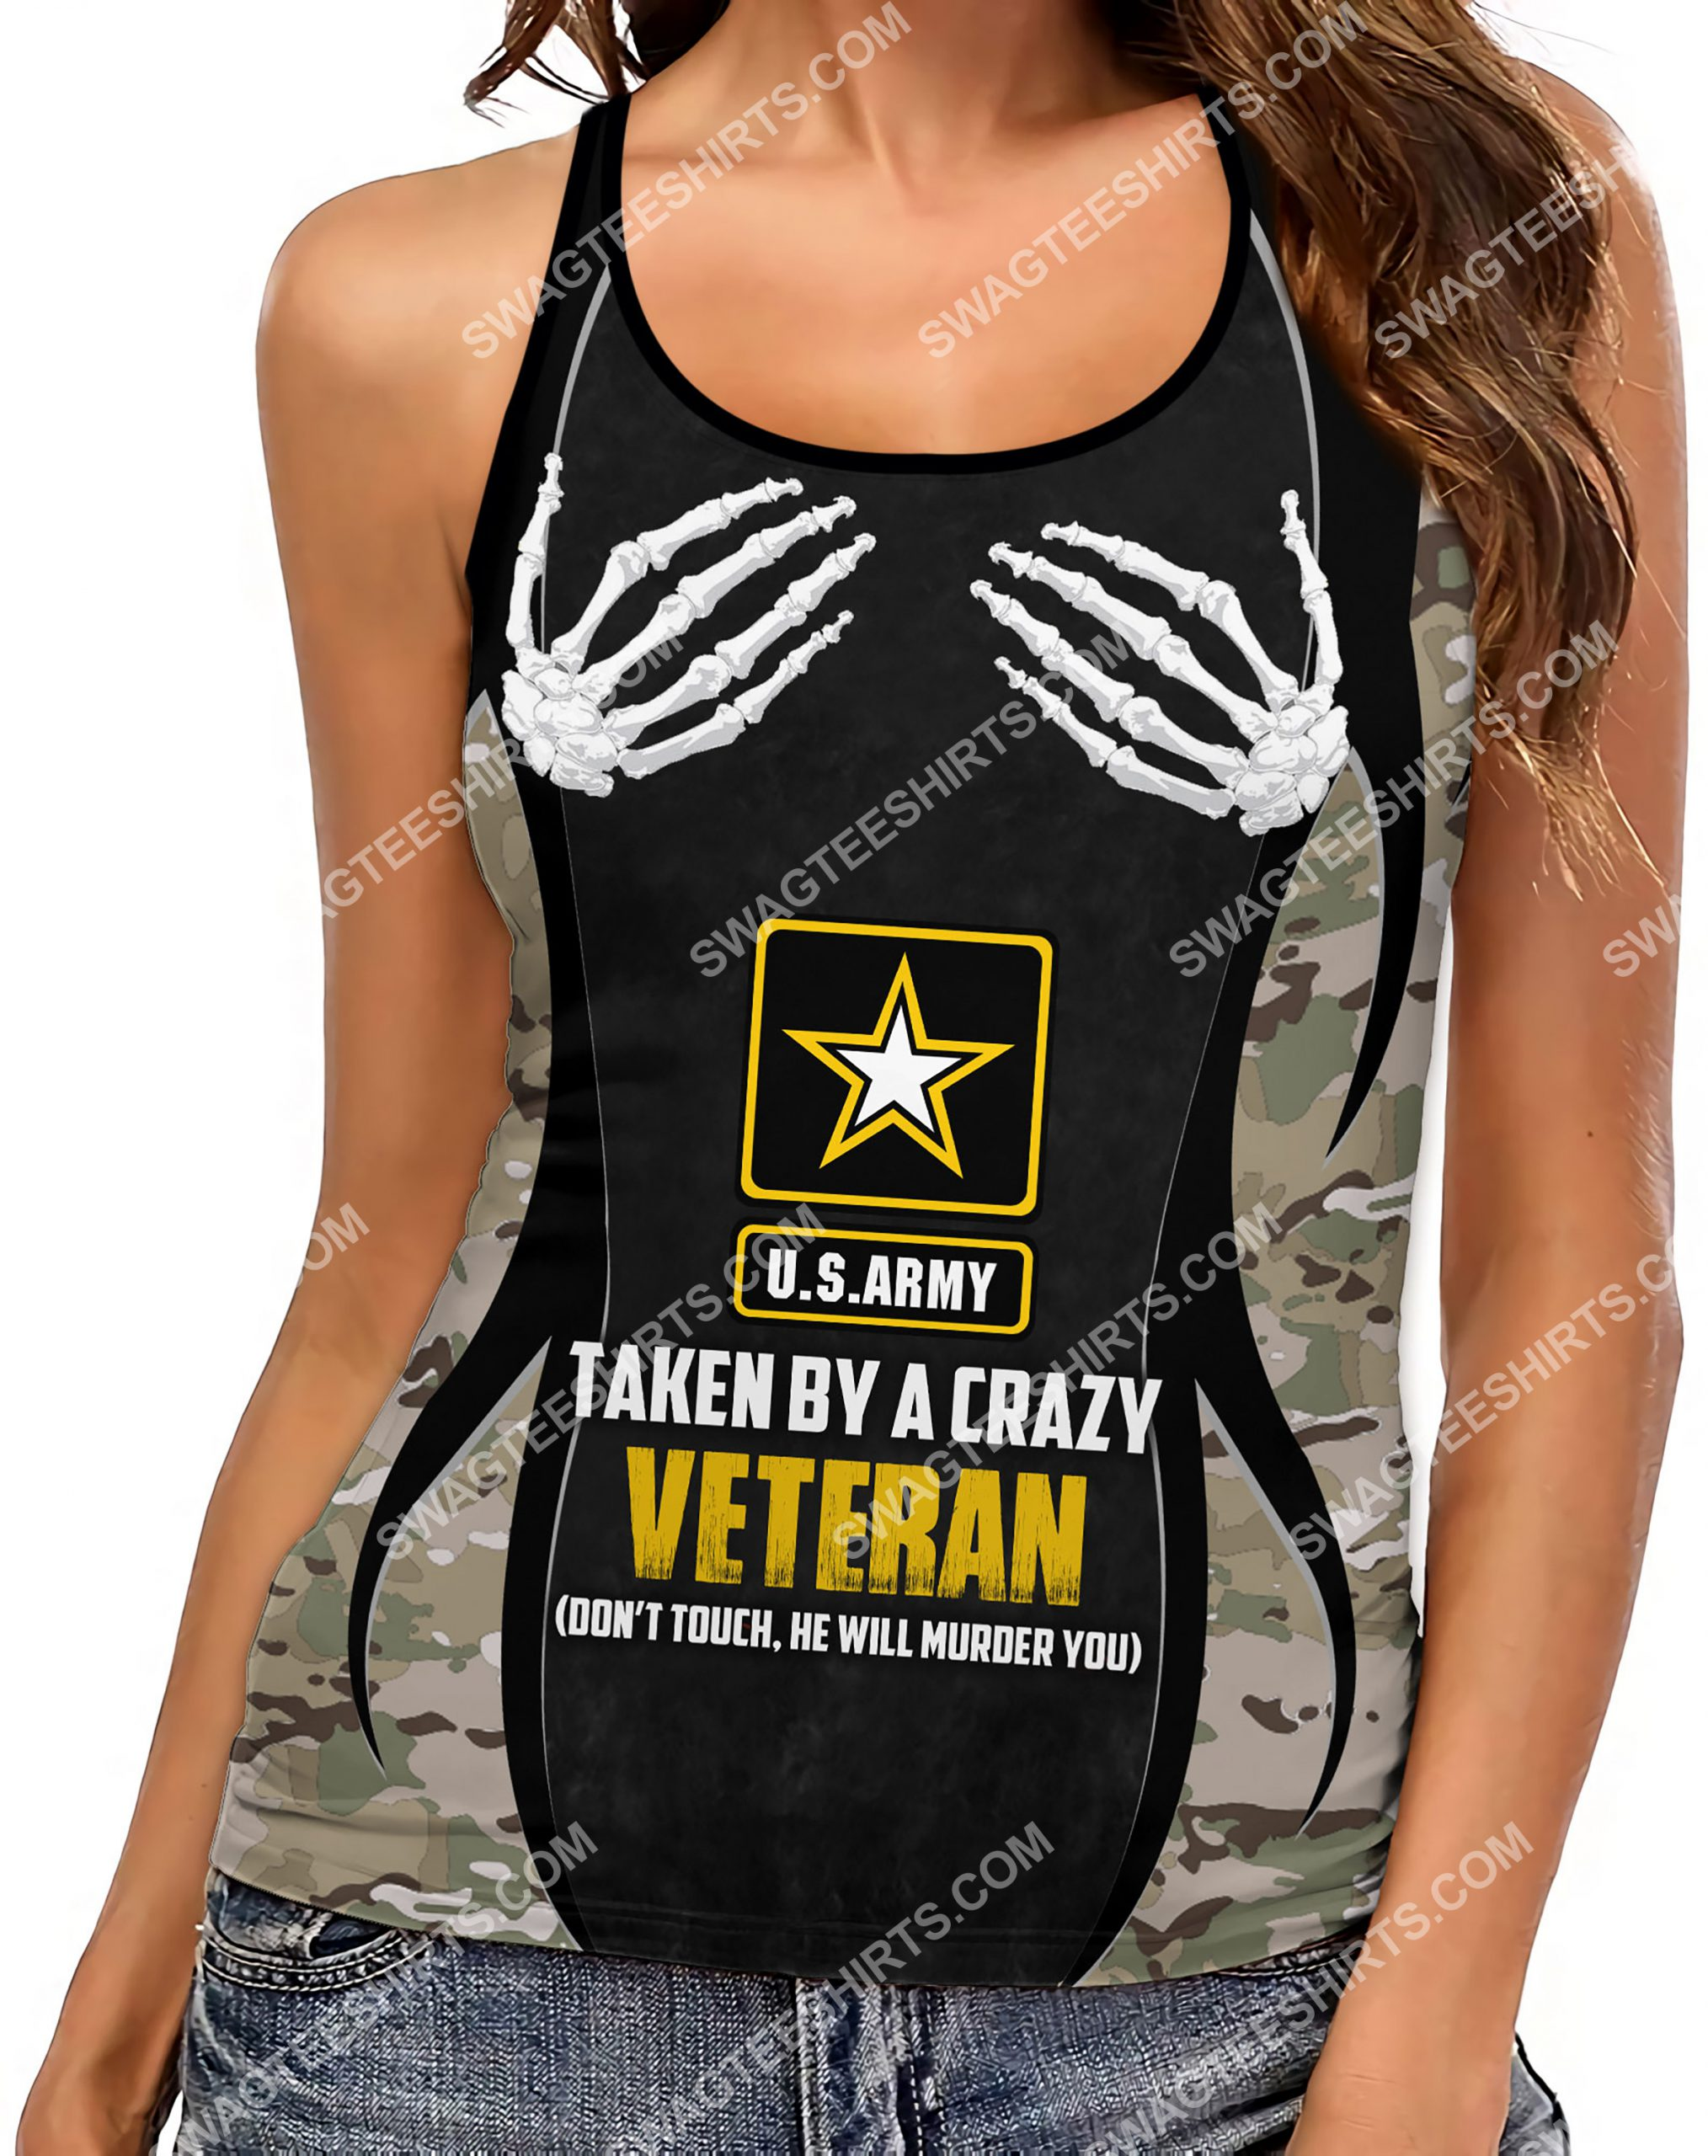 [Top-selling] taken by a crazy veteran don't touch strappy back tank top - maria